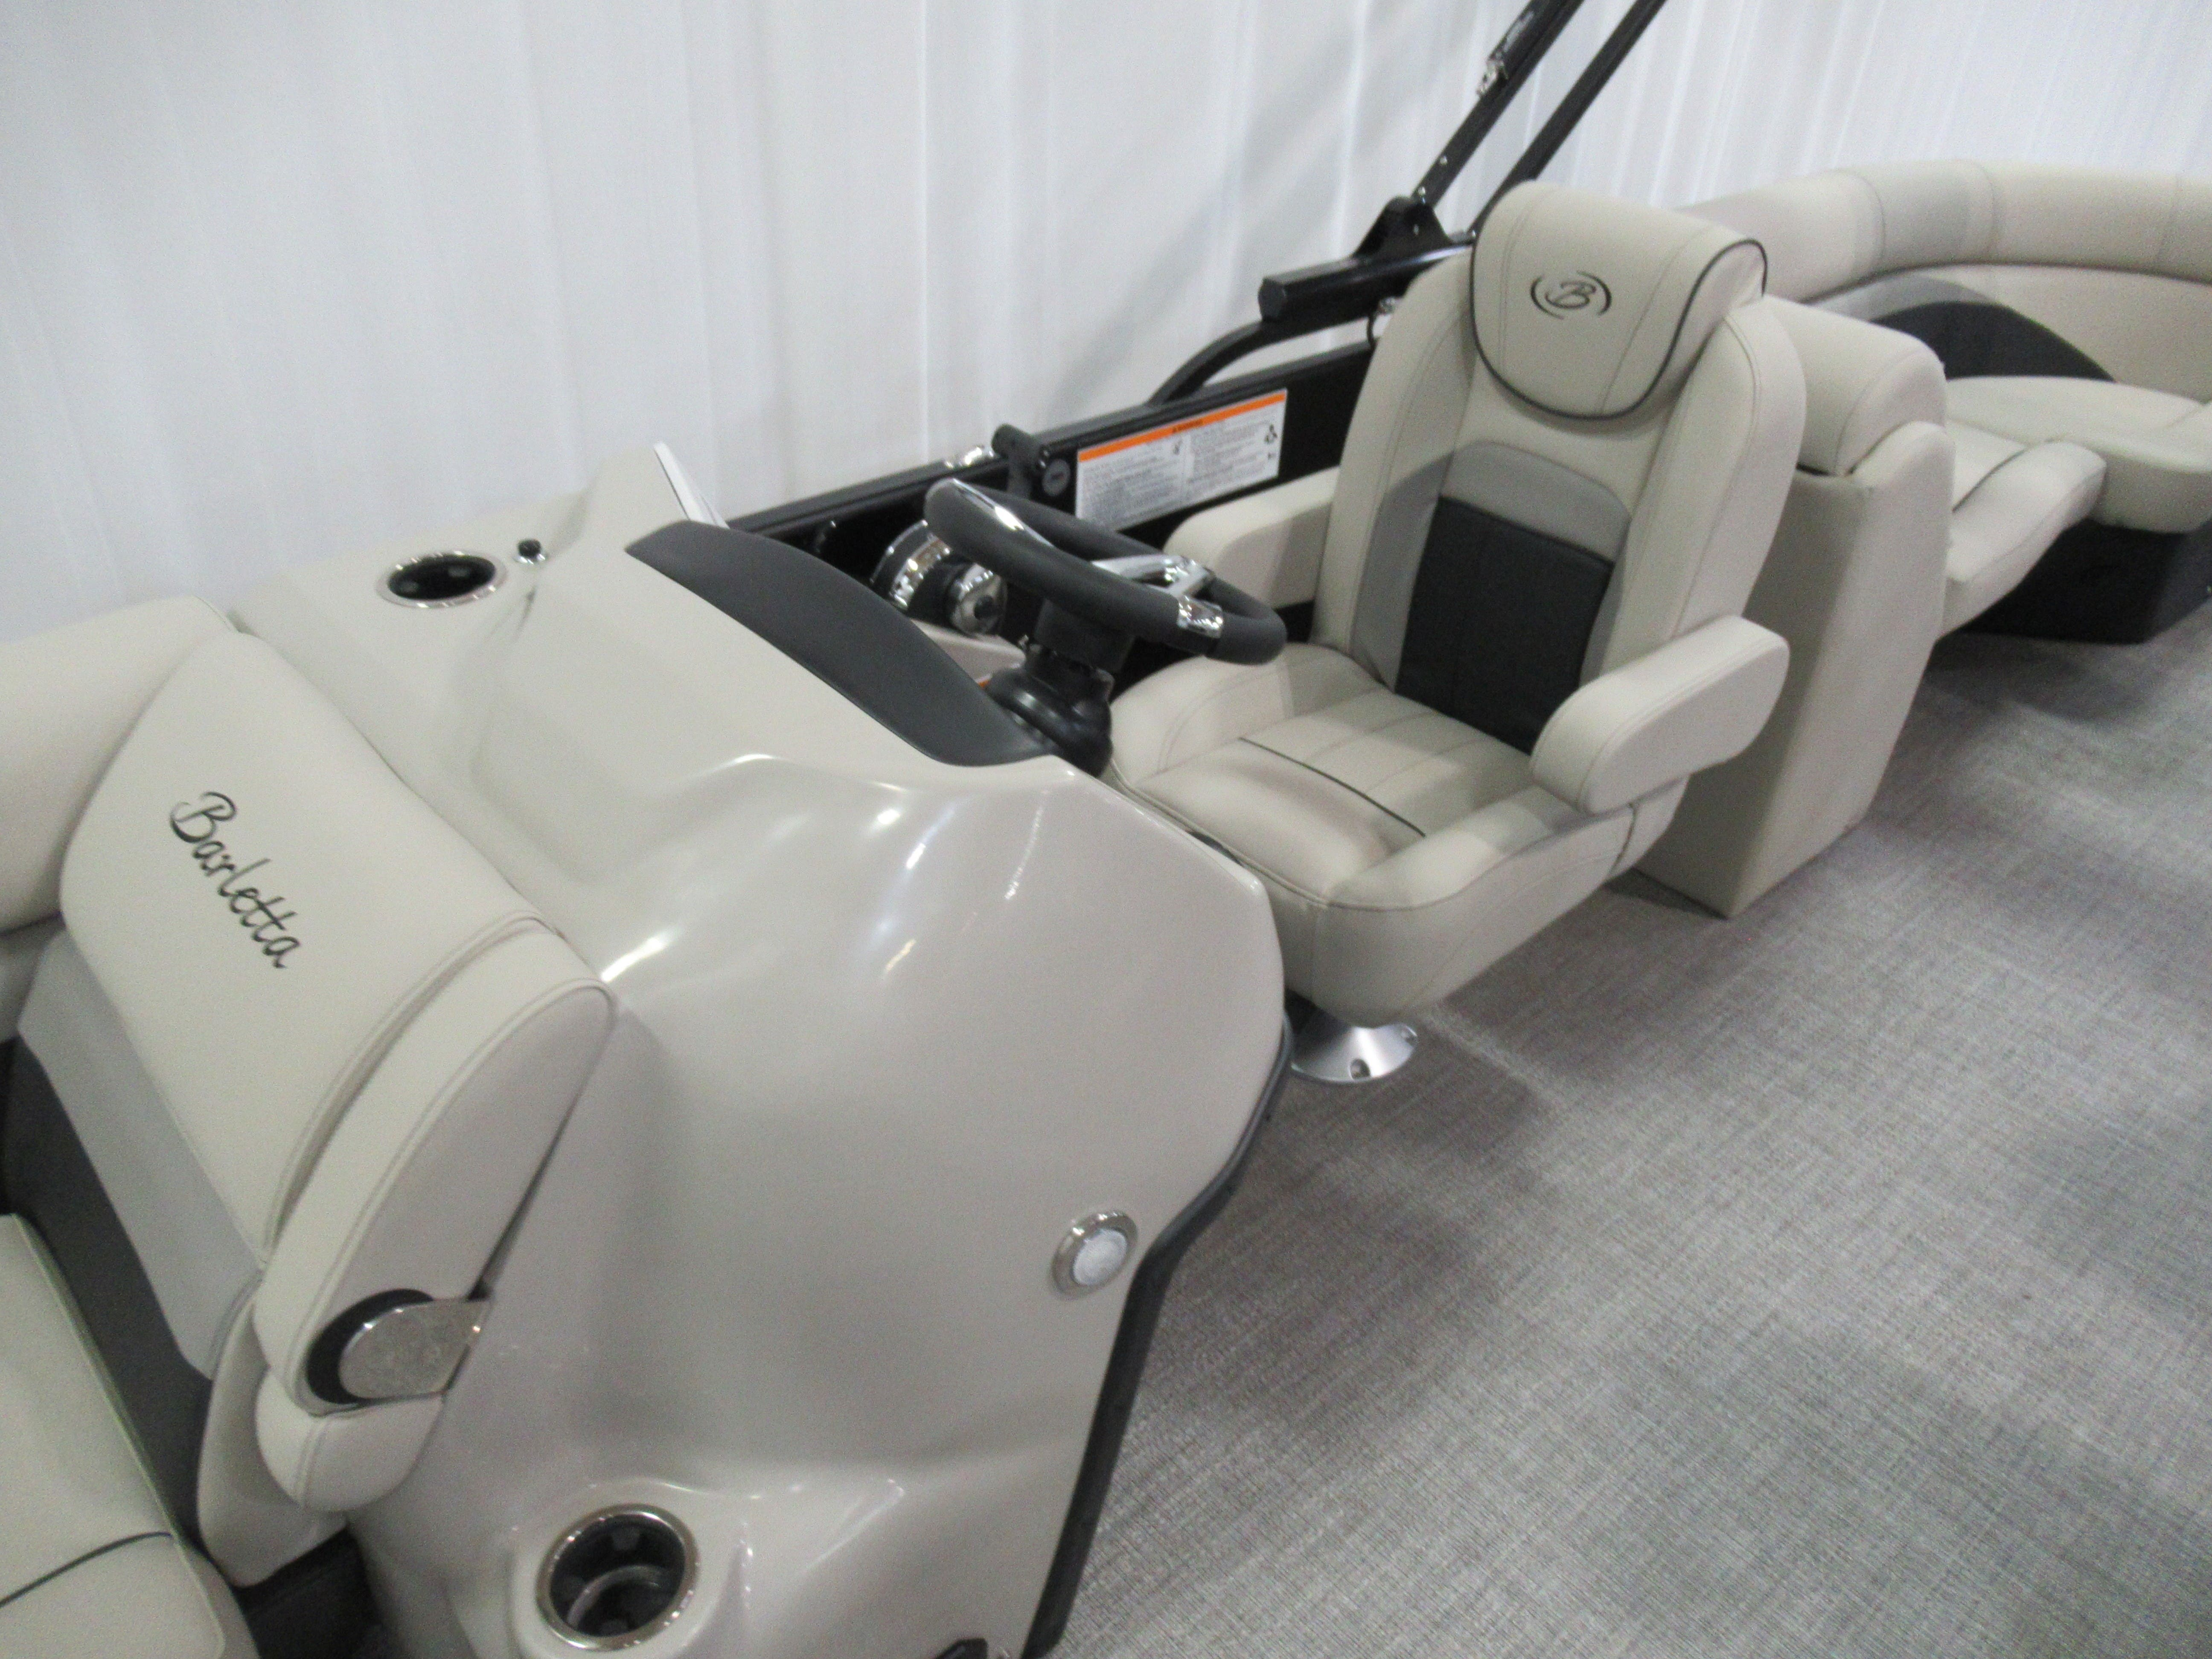 2021 Barletta boat for sale, model of the boat is C22qc & Image # 6 of 11